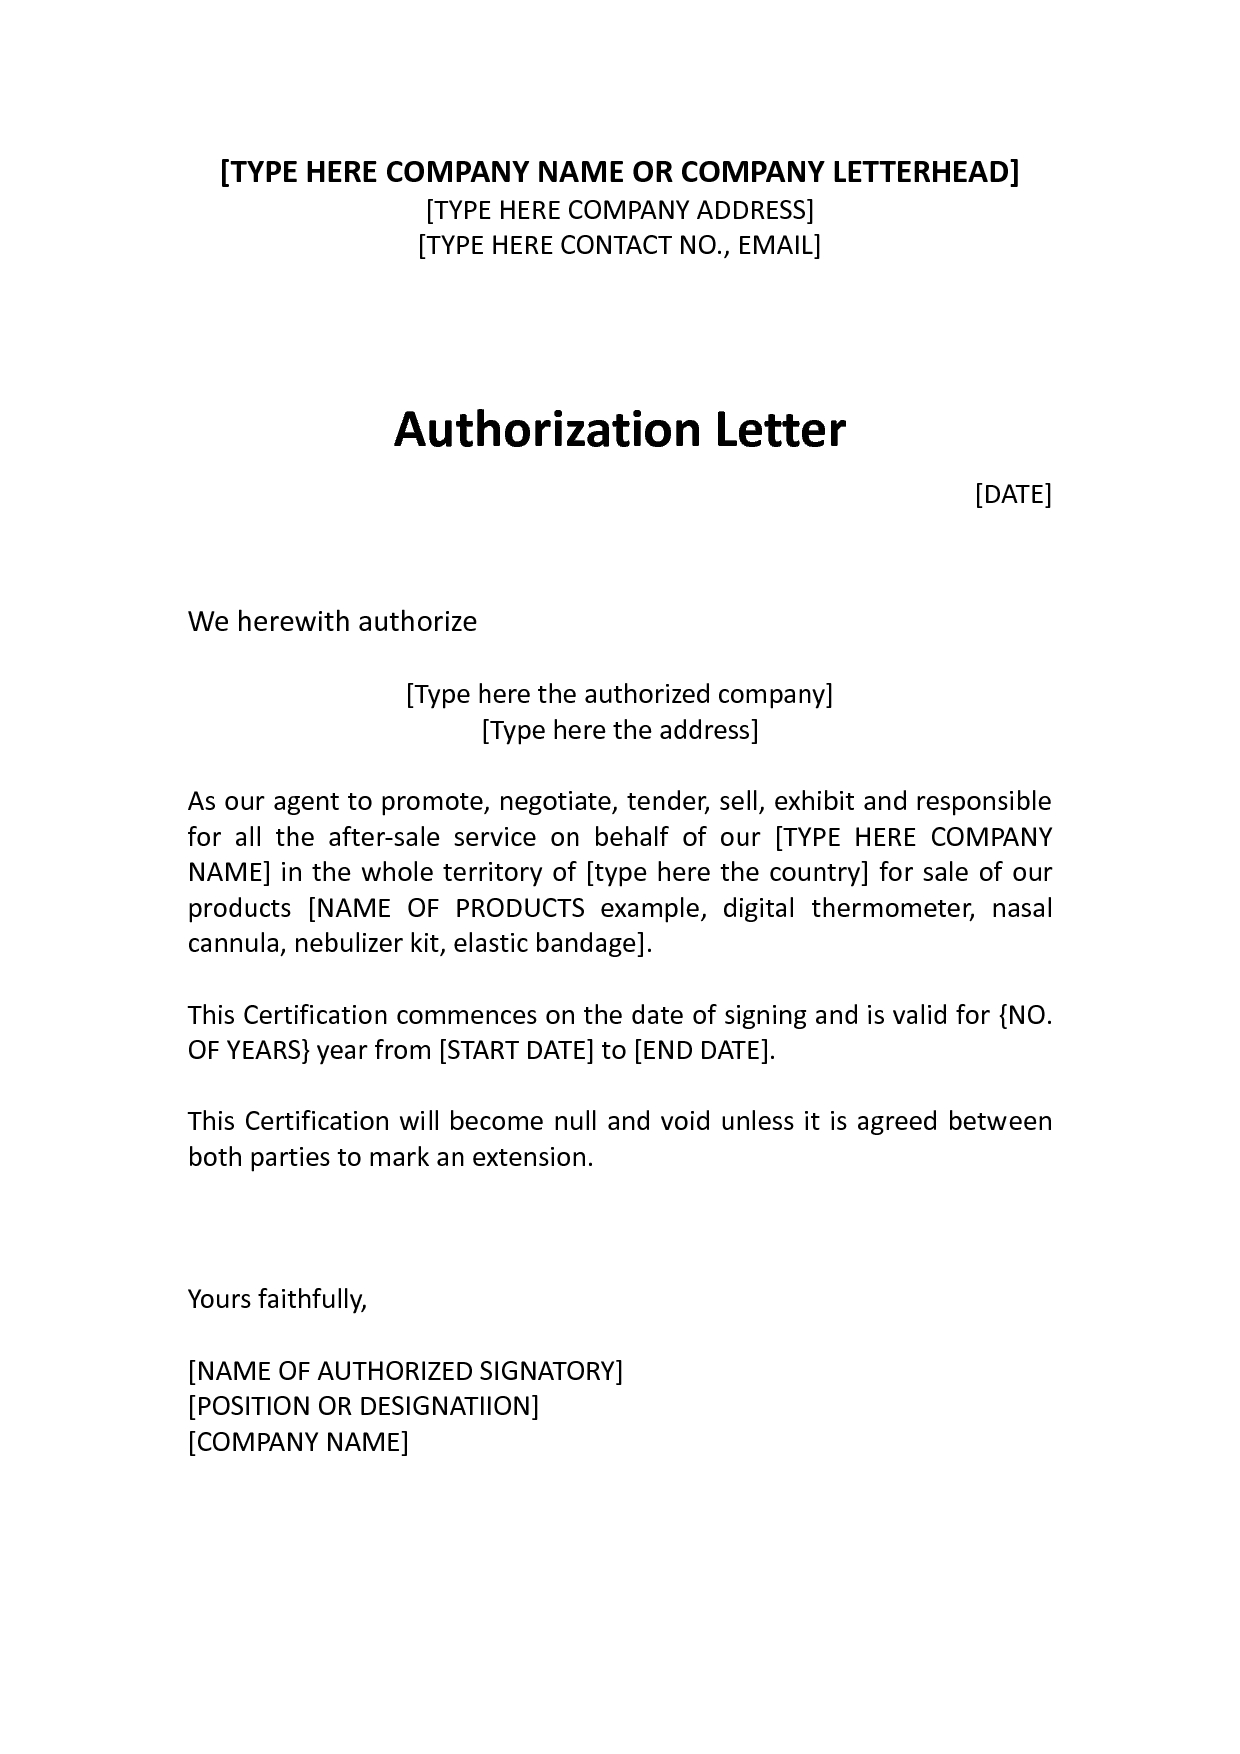 Certificate Of Insurance Request Letter Template - Authorization Distributor Letter Sample Distributor Dealer